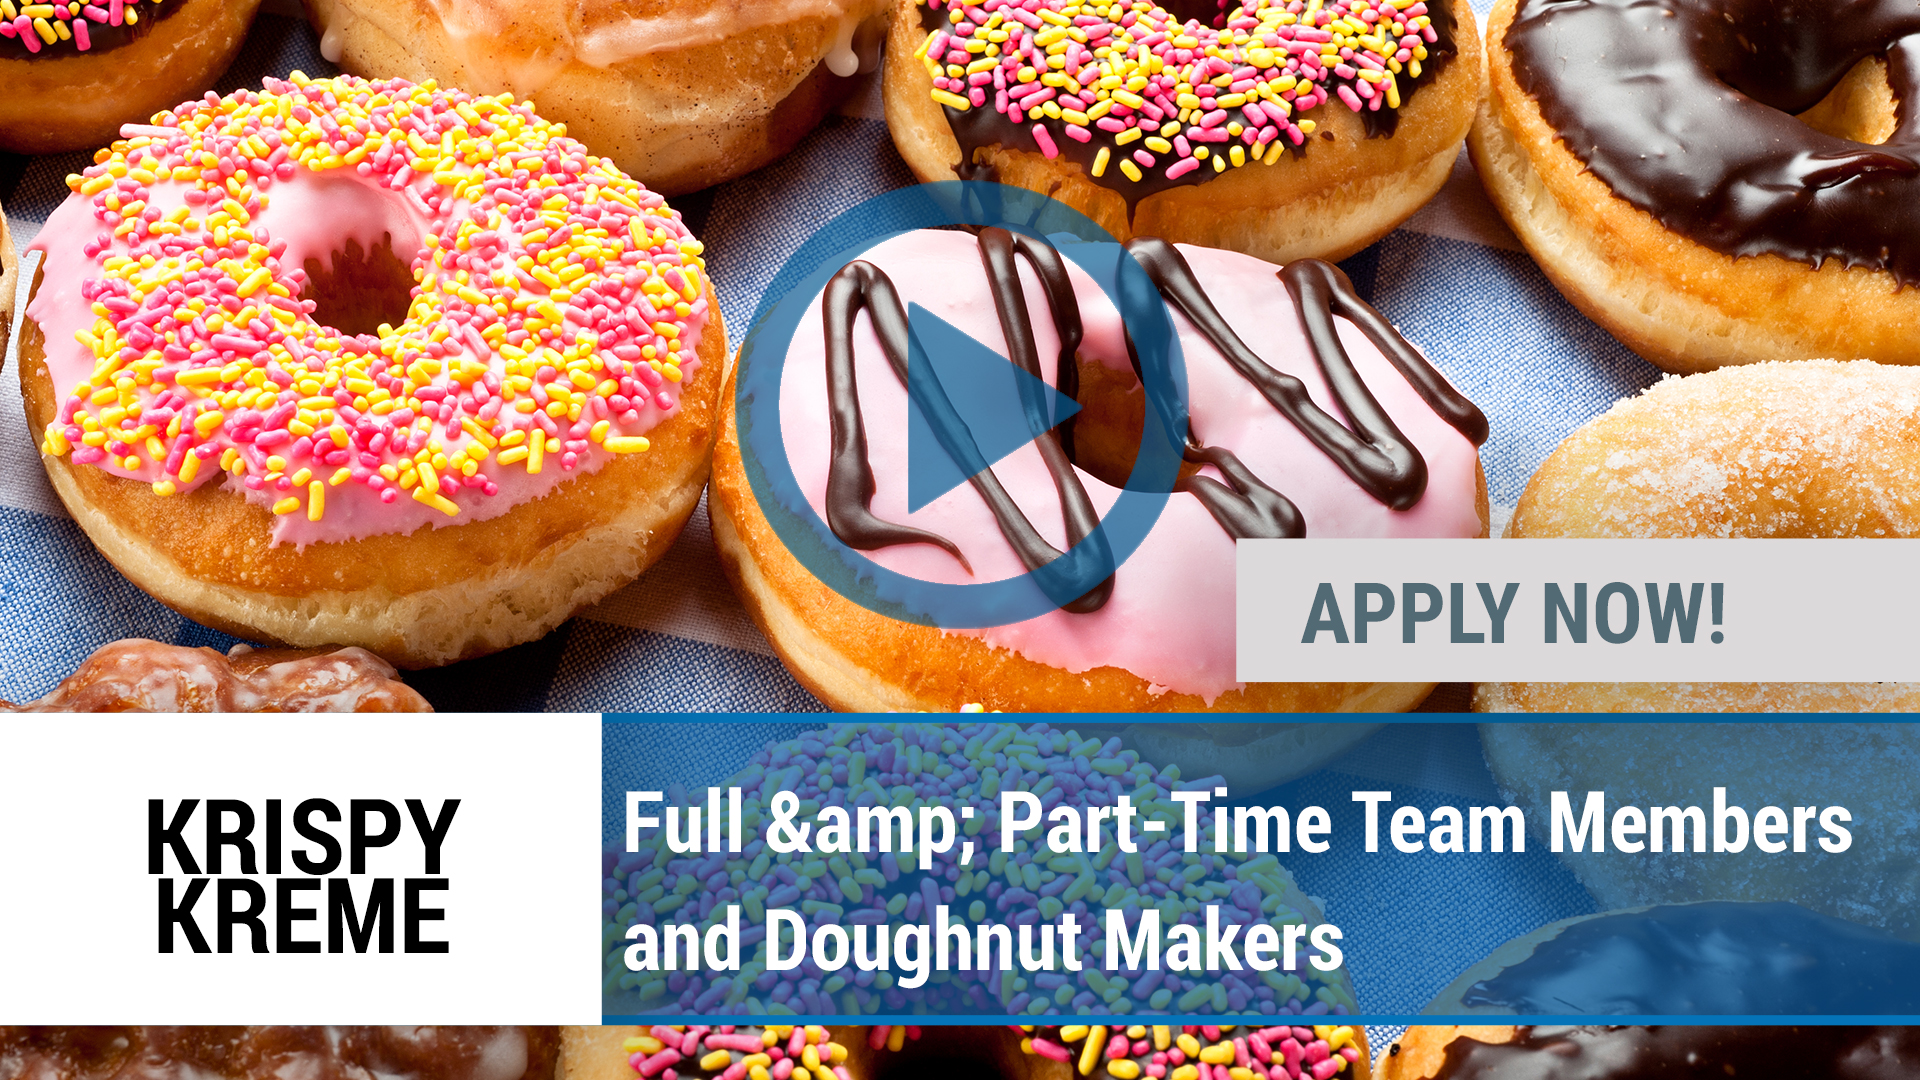 Watch our careers video for available job opening Full & Part-Time Team Members and Doughnut Makers in Dfw, TX